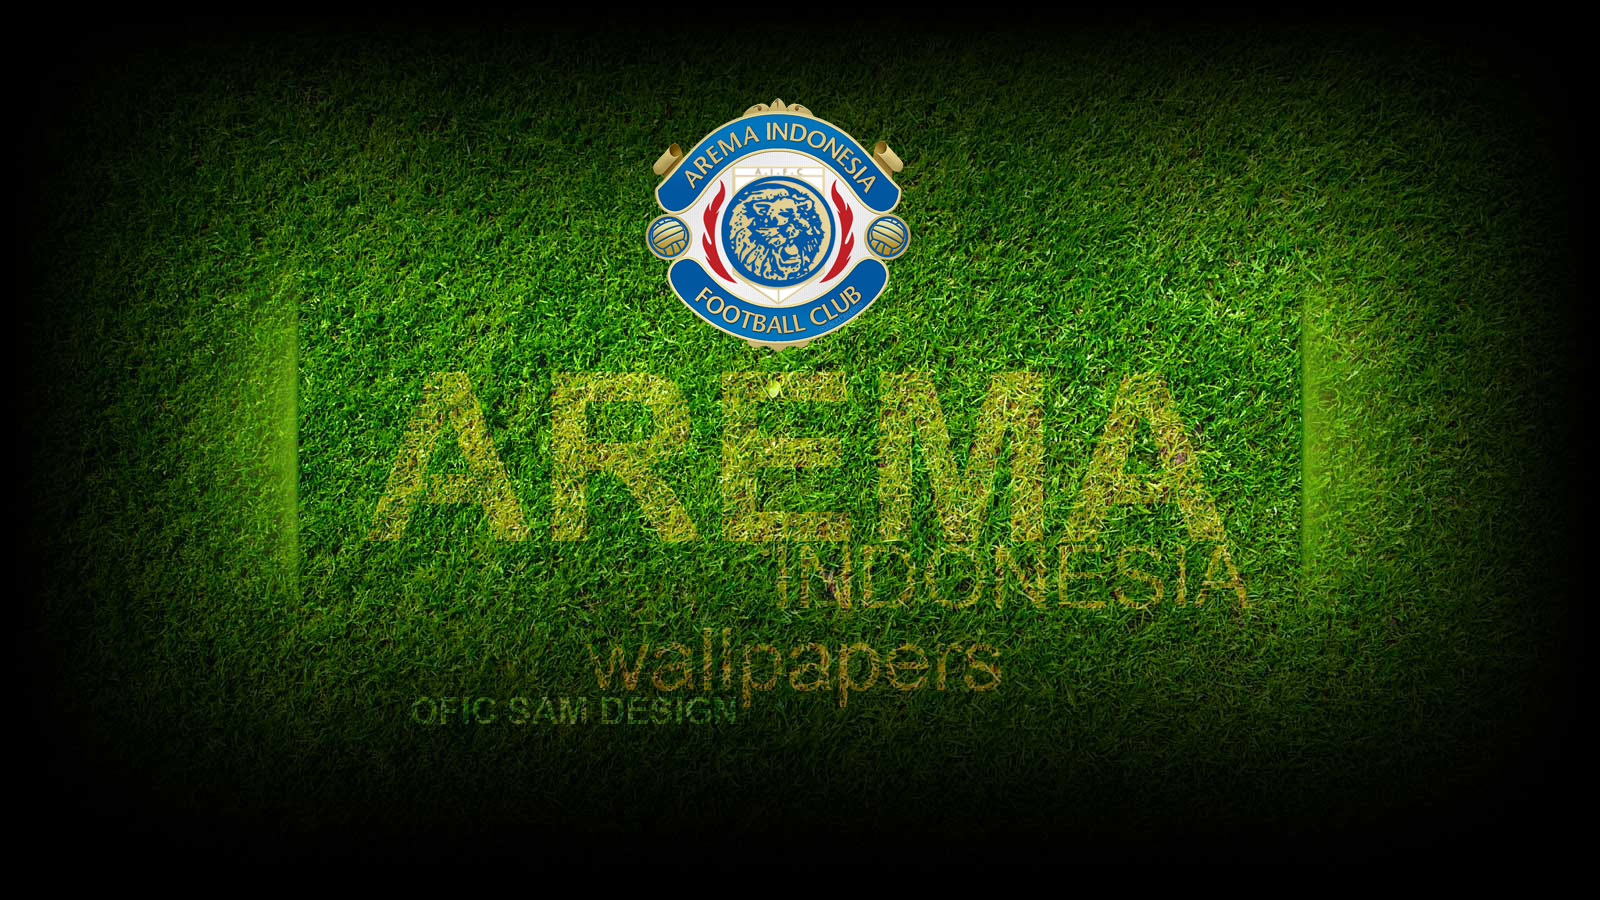 http://4.bp.blogspot.com/-ANvqQzt0__k/TlCByrfiZNI/AAAAAAAAAfA/tXXeY05Kswg/s1600/by+Ofic+Sam+be+partner+AREMA+INDONESIA+wallpapers.jpg